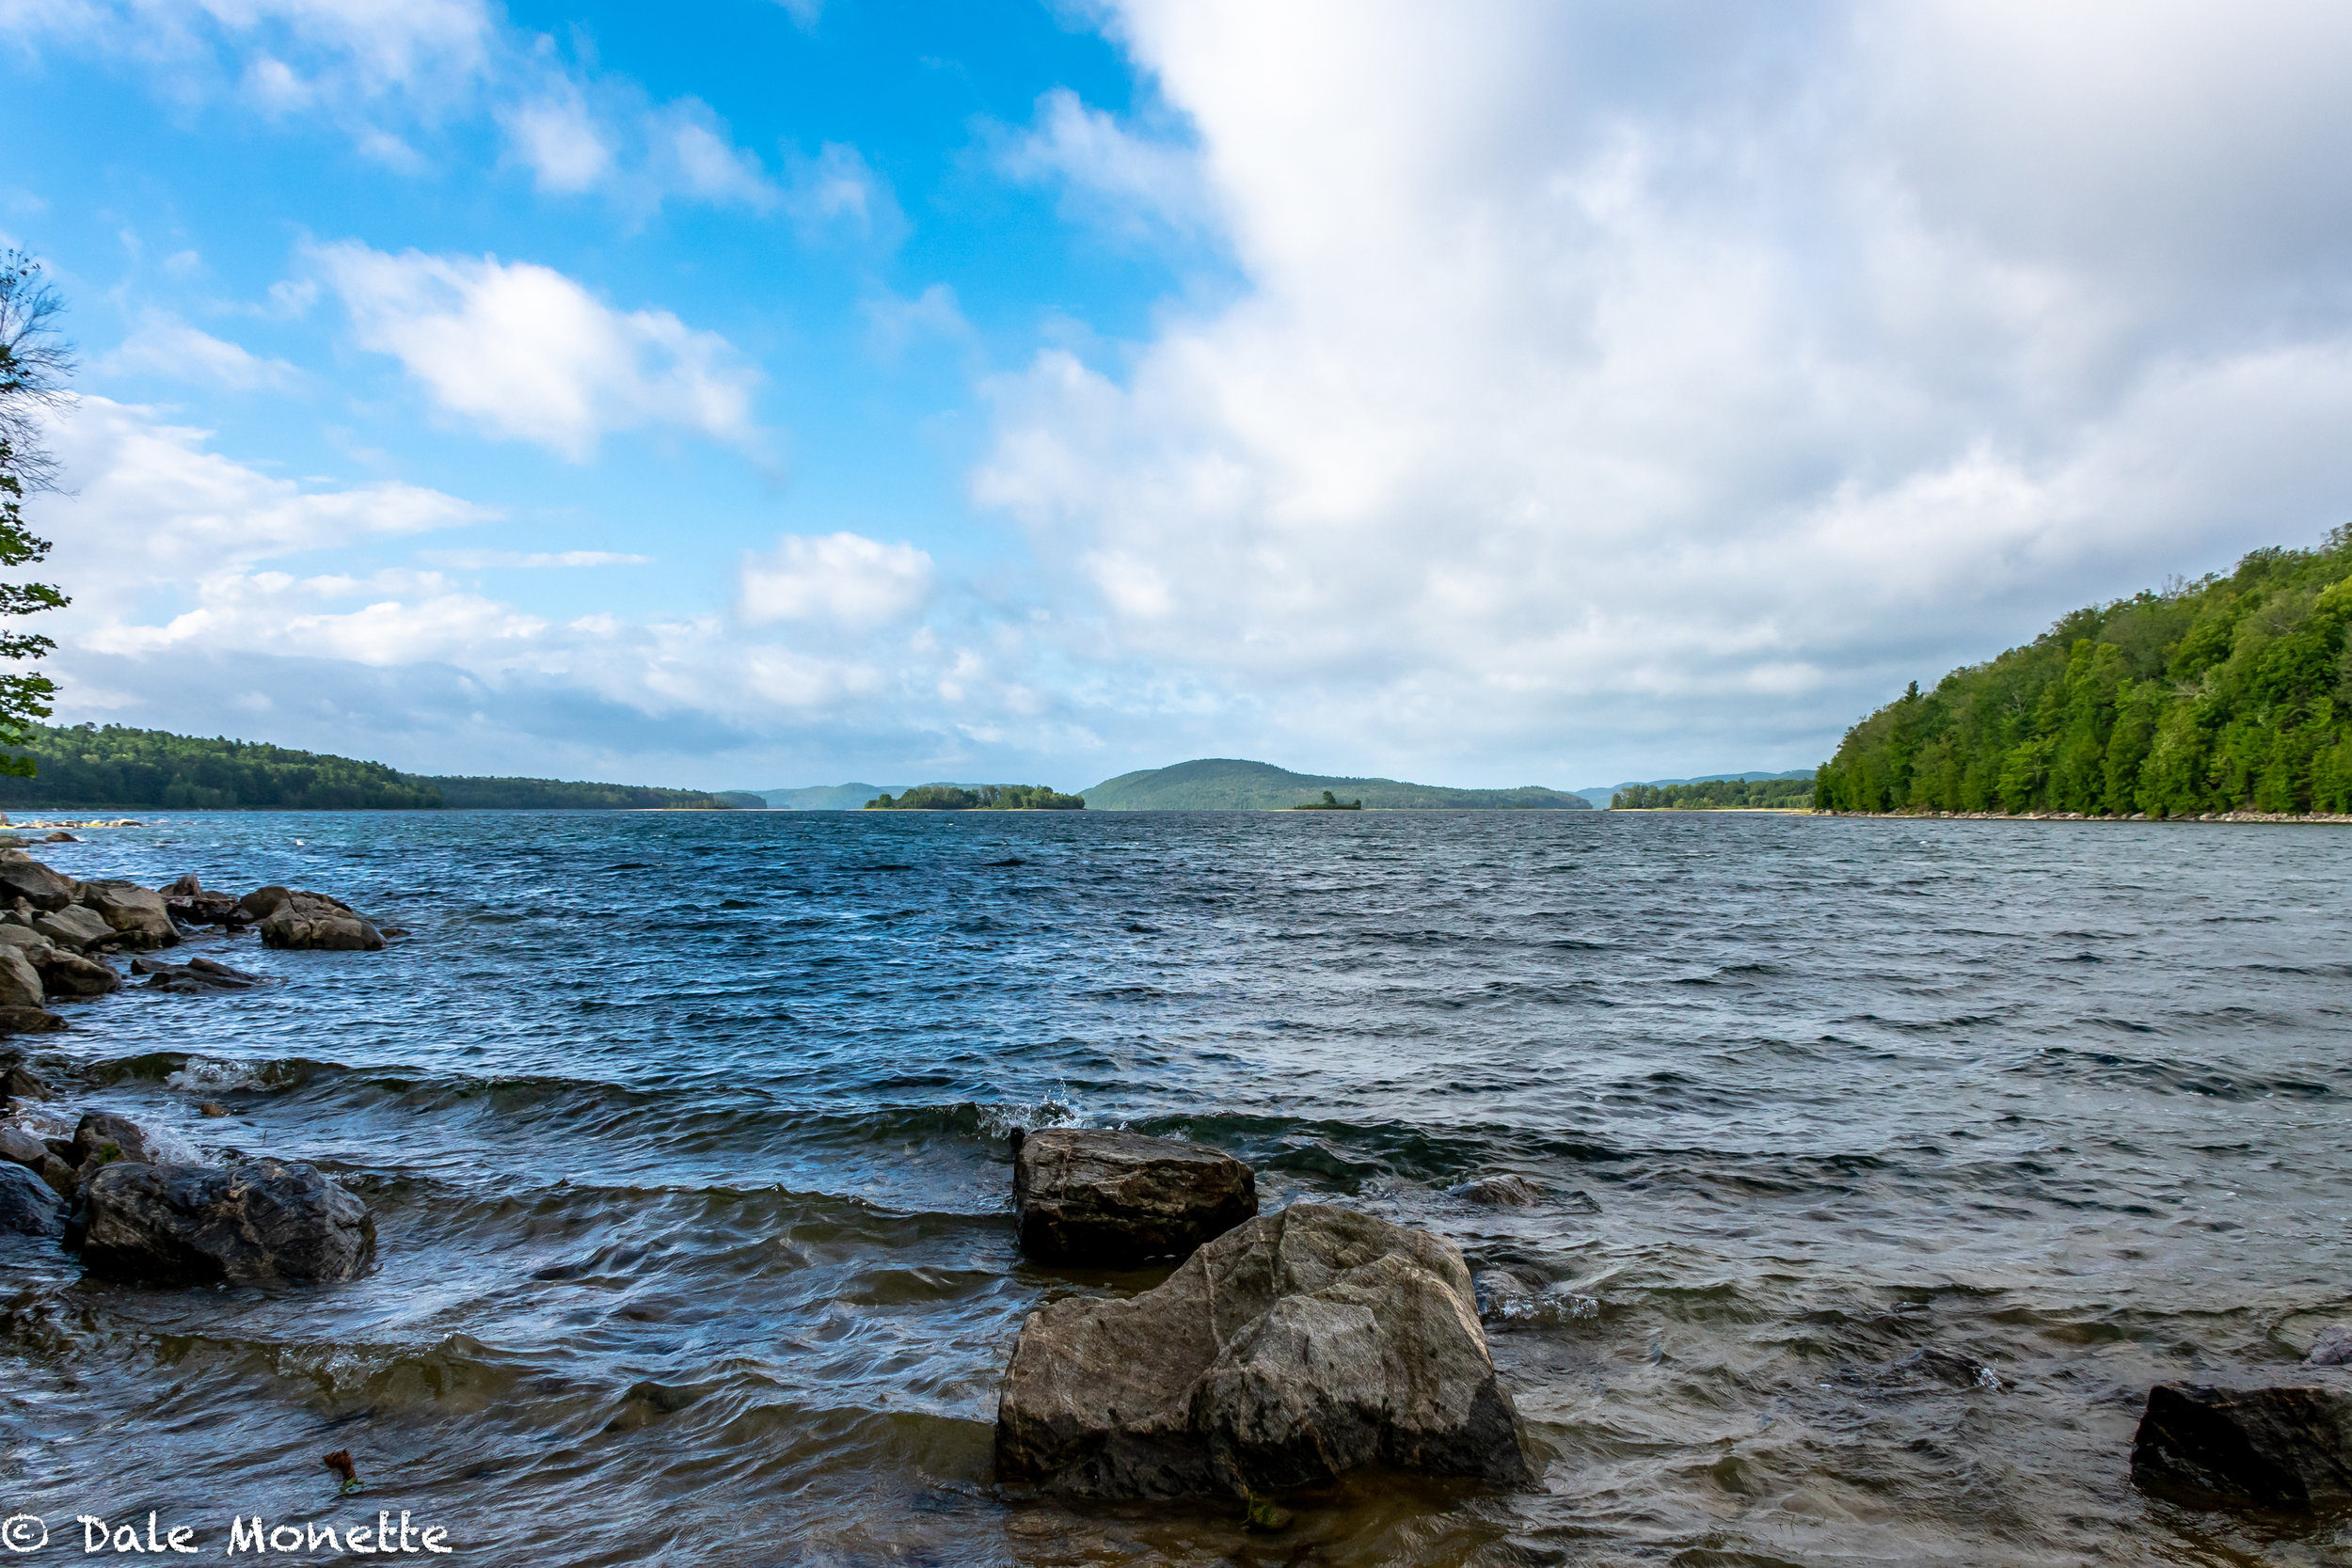 A great day at the Quabbin, although a bit windy, it kept the bugs away!